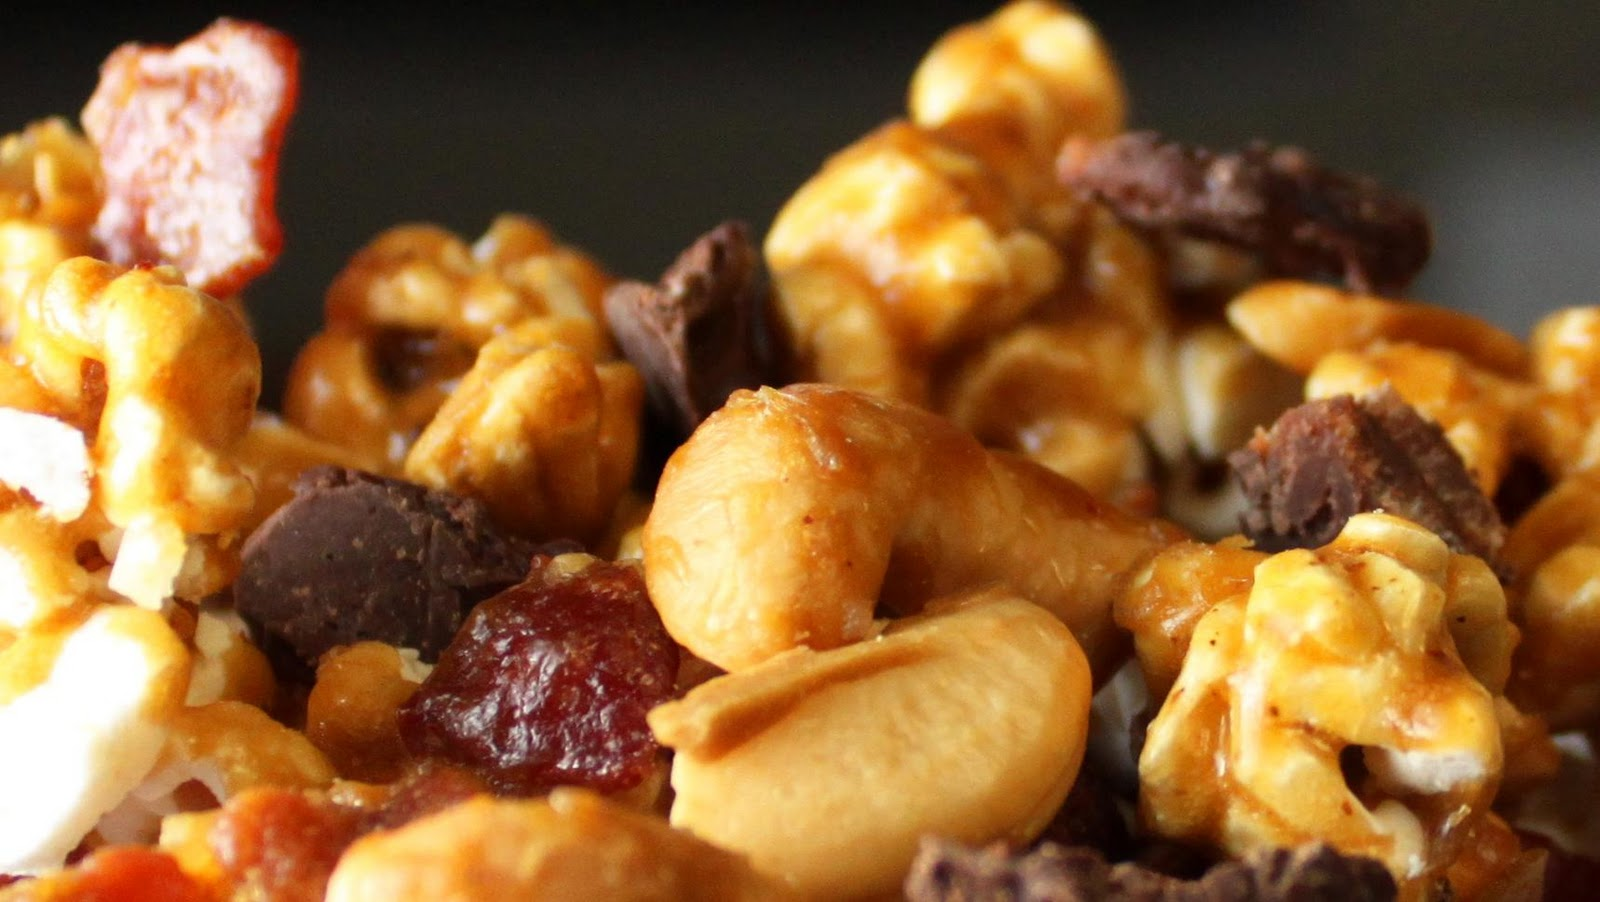 six cups popcorn, popped (see below for popcorn recipe)